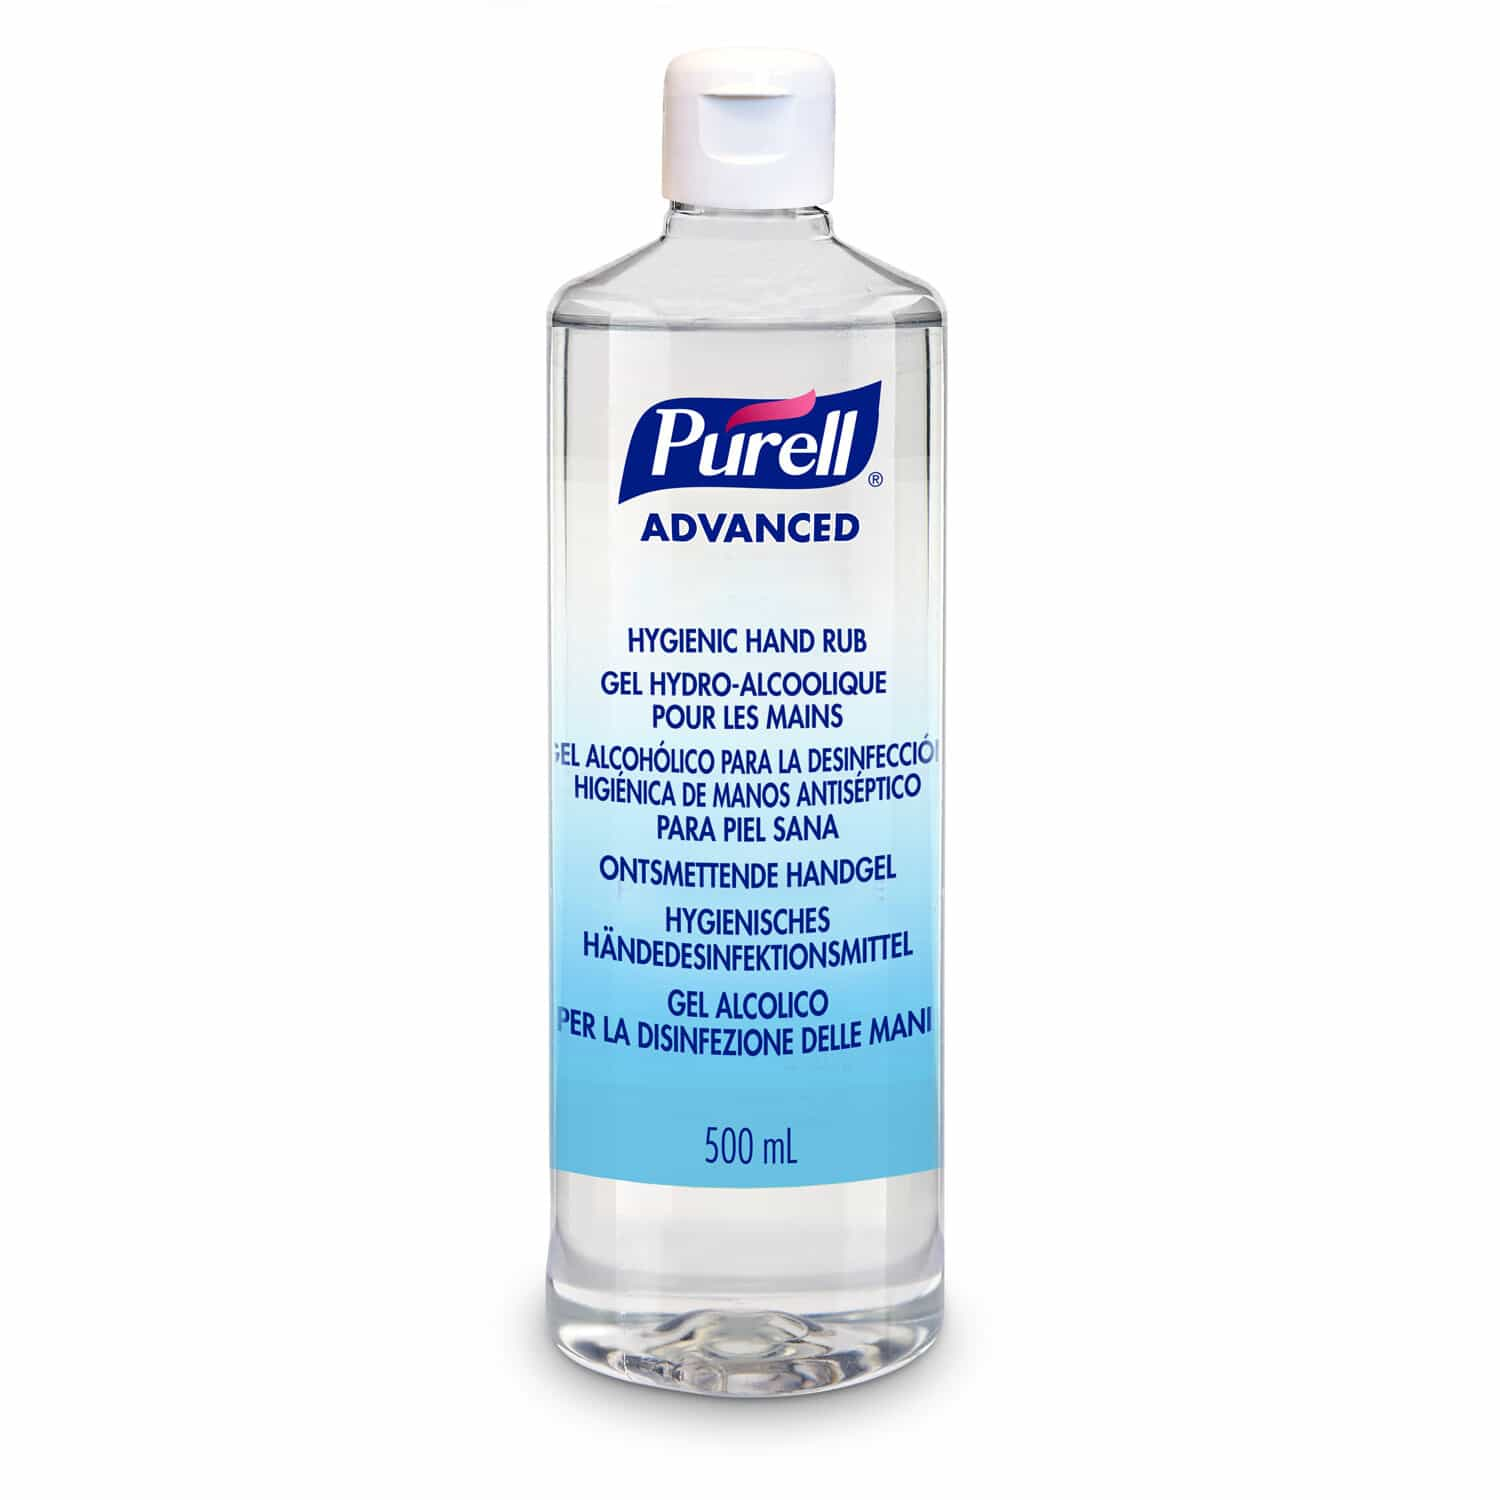 https://static.praxisdienst.com/out/pictures/generated/product/1/1500_1500_100/138513_purell_advanced_500ml_1.jpg